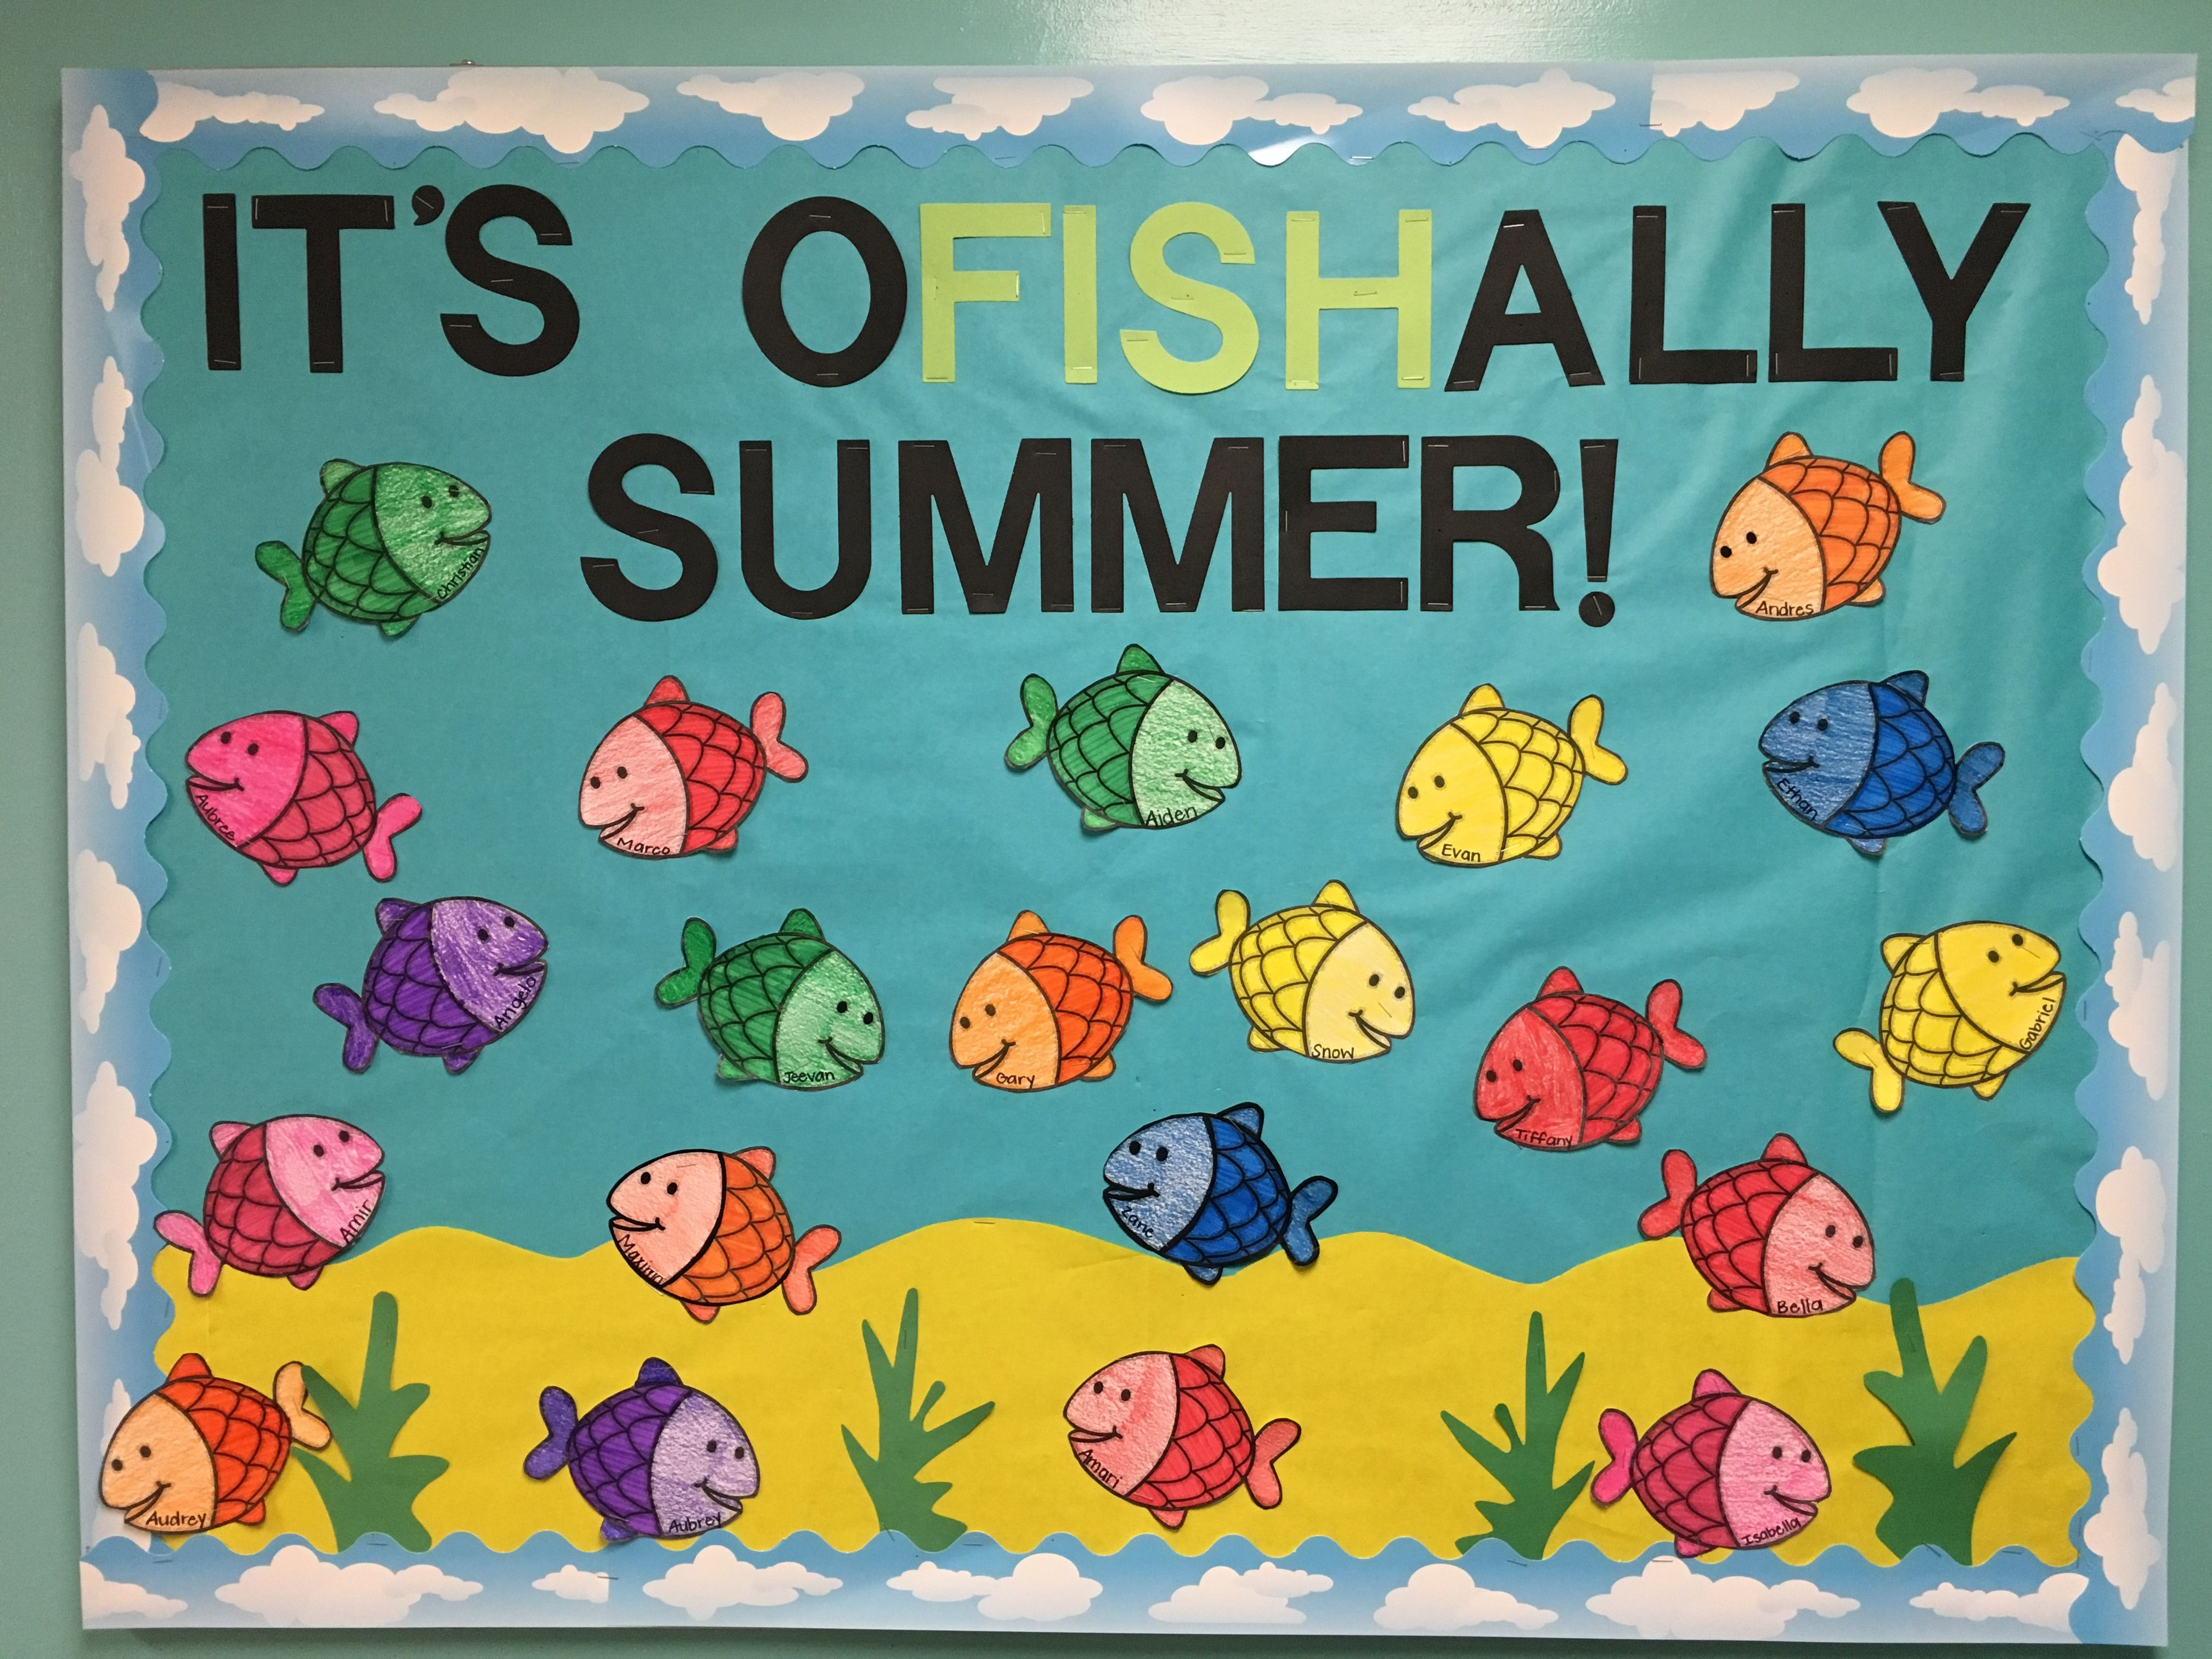 July 4th Bulletin Board Ideas To Fill Your Heart With